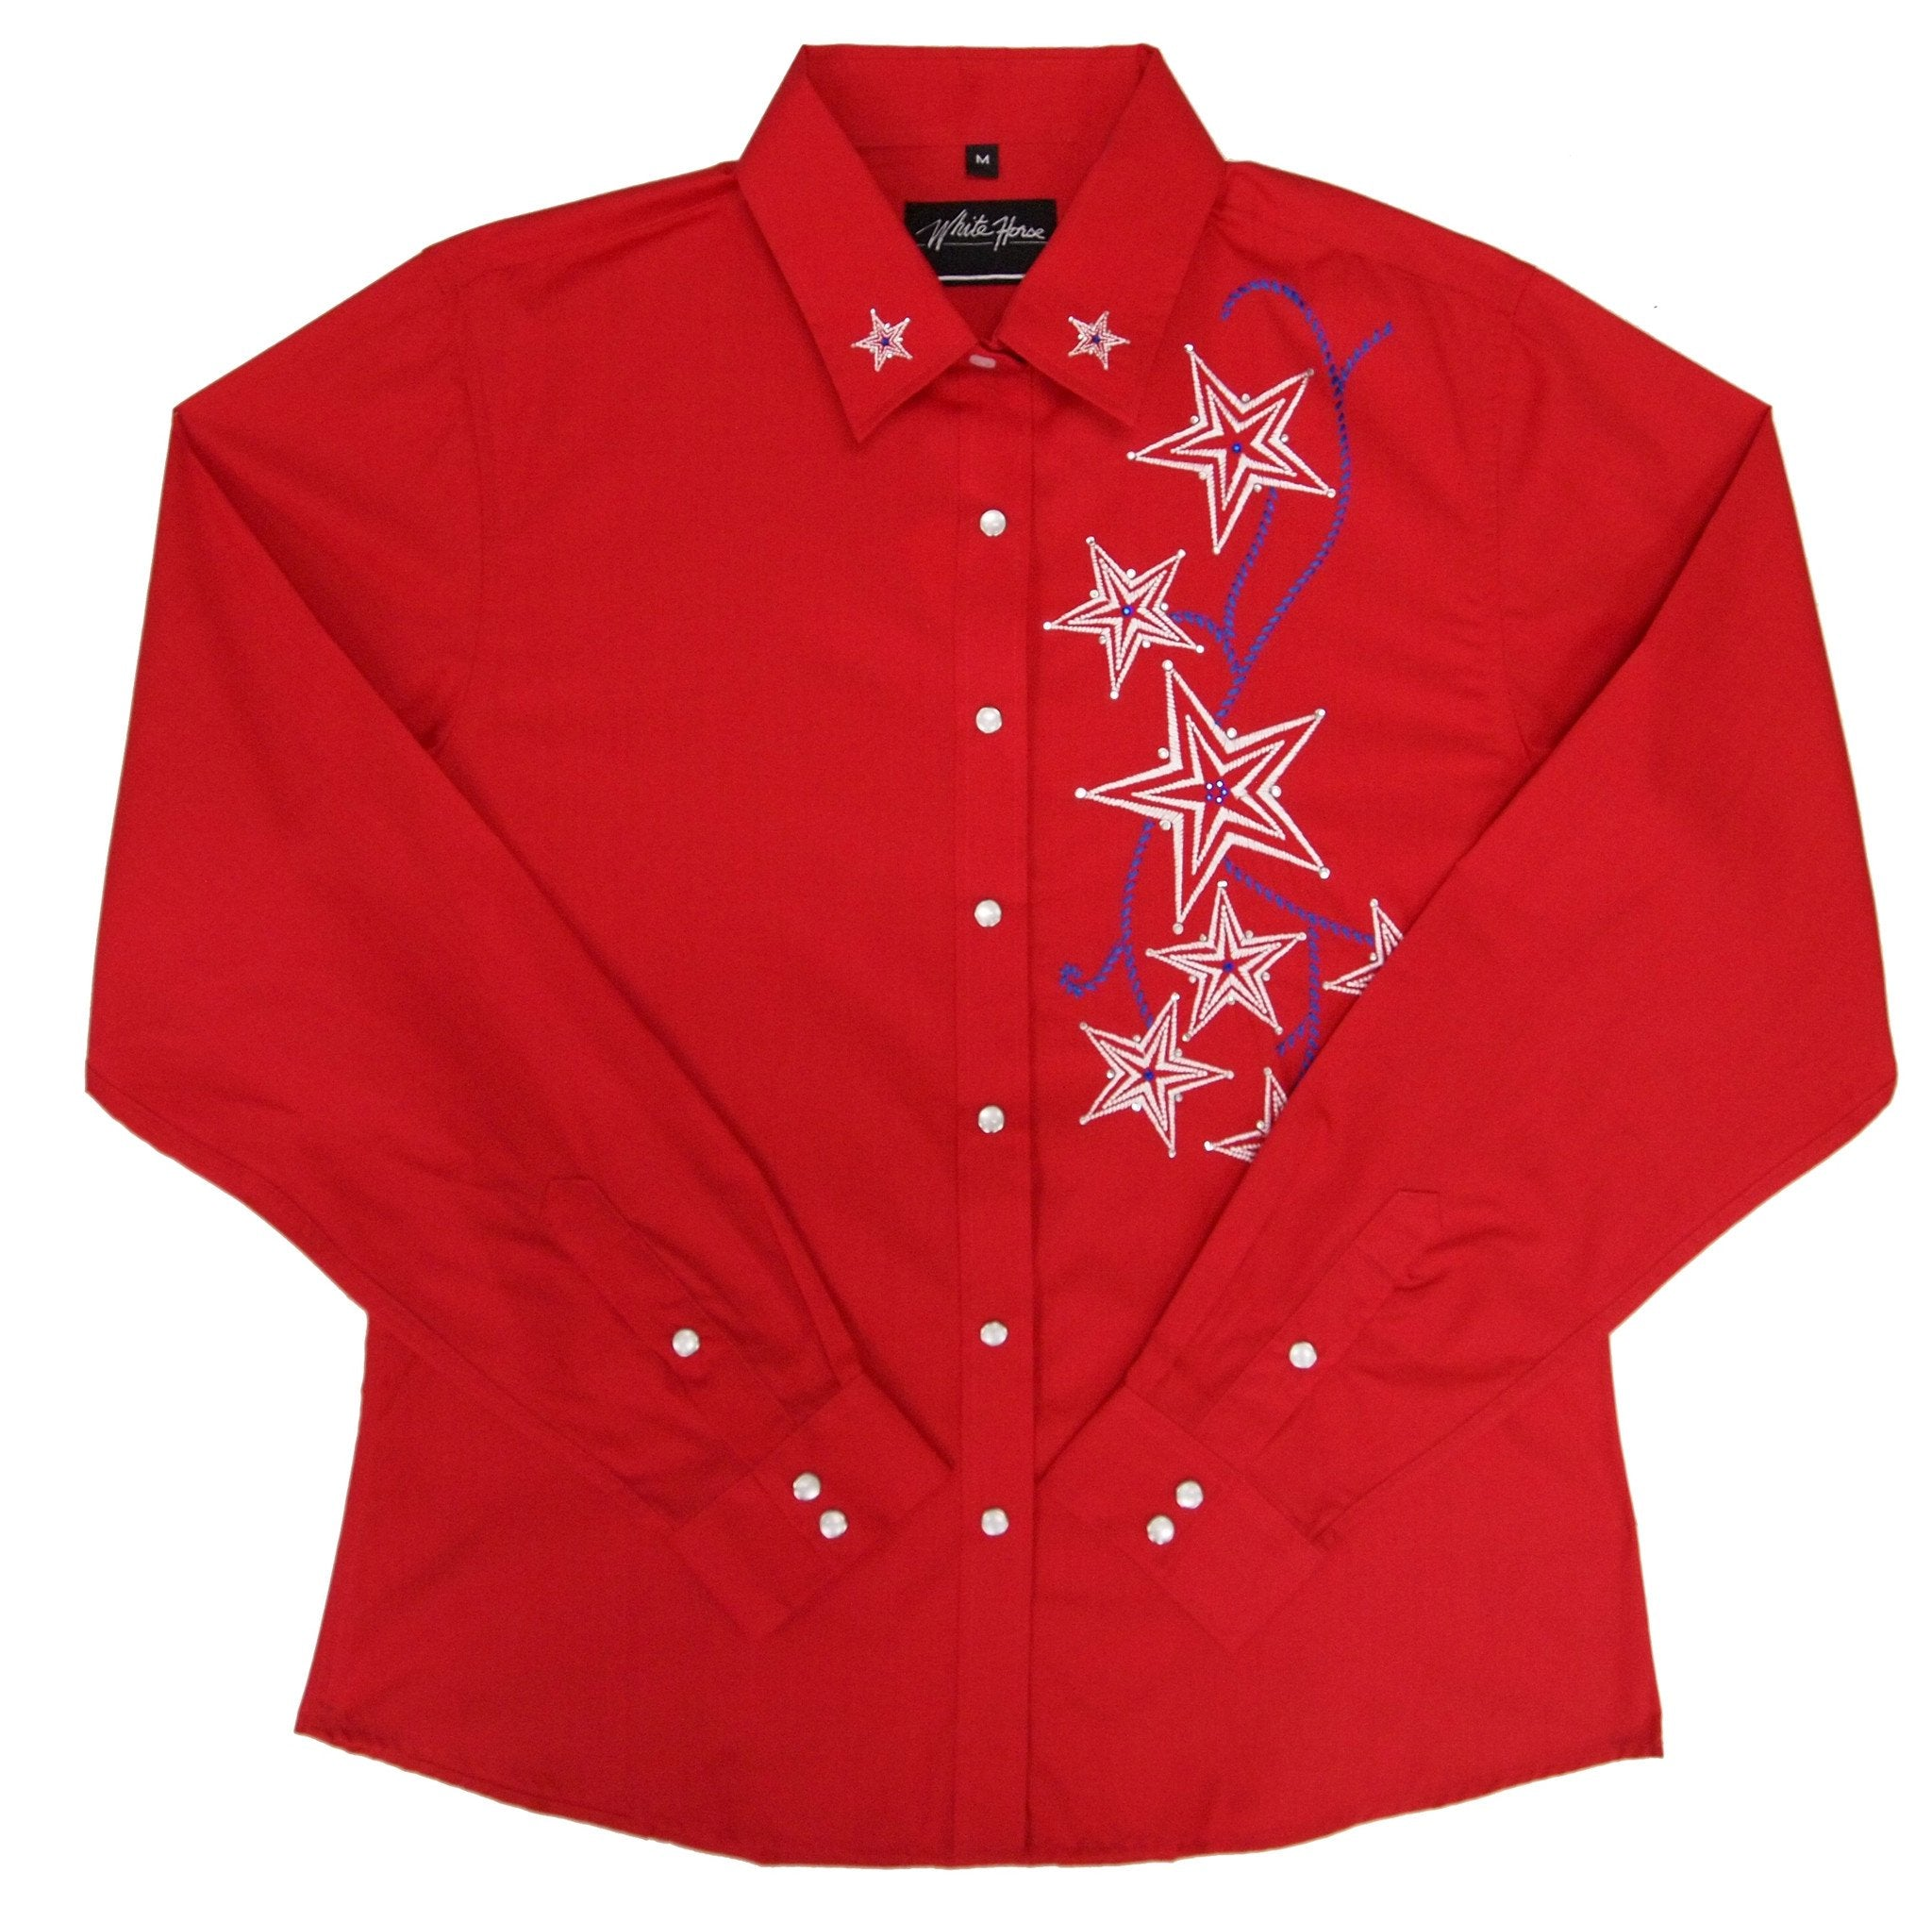 Embroidered Western Shirt White Horse Womens Star Burst Outwest Shop Alchemy Navy Apparel With Red